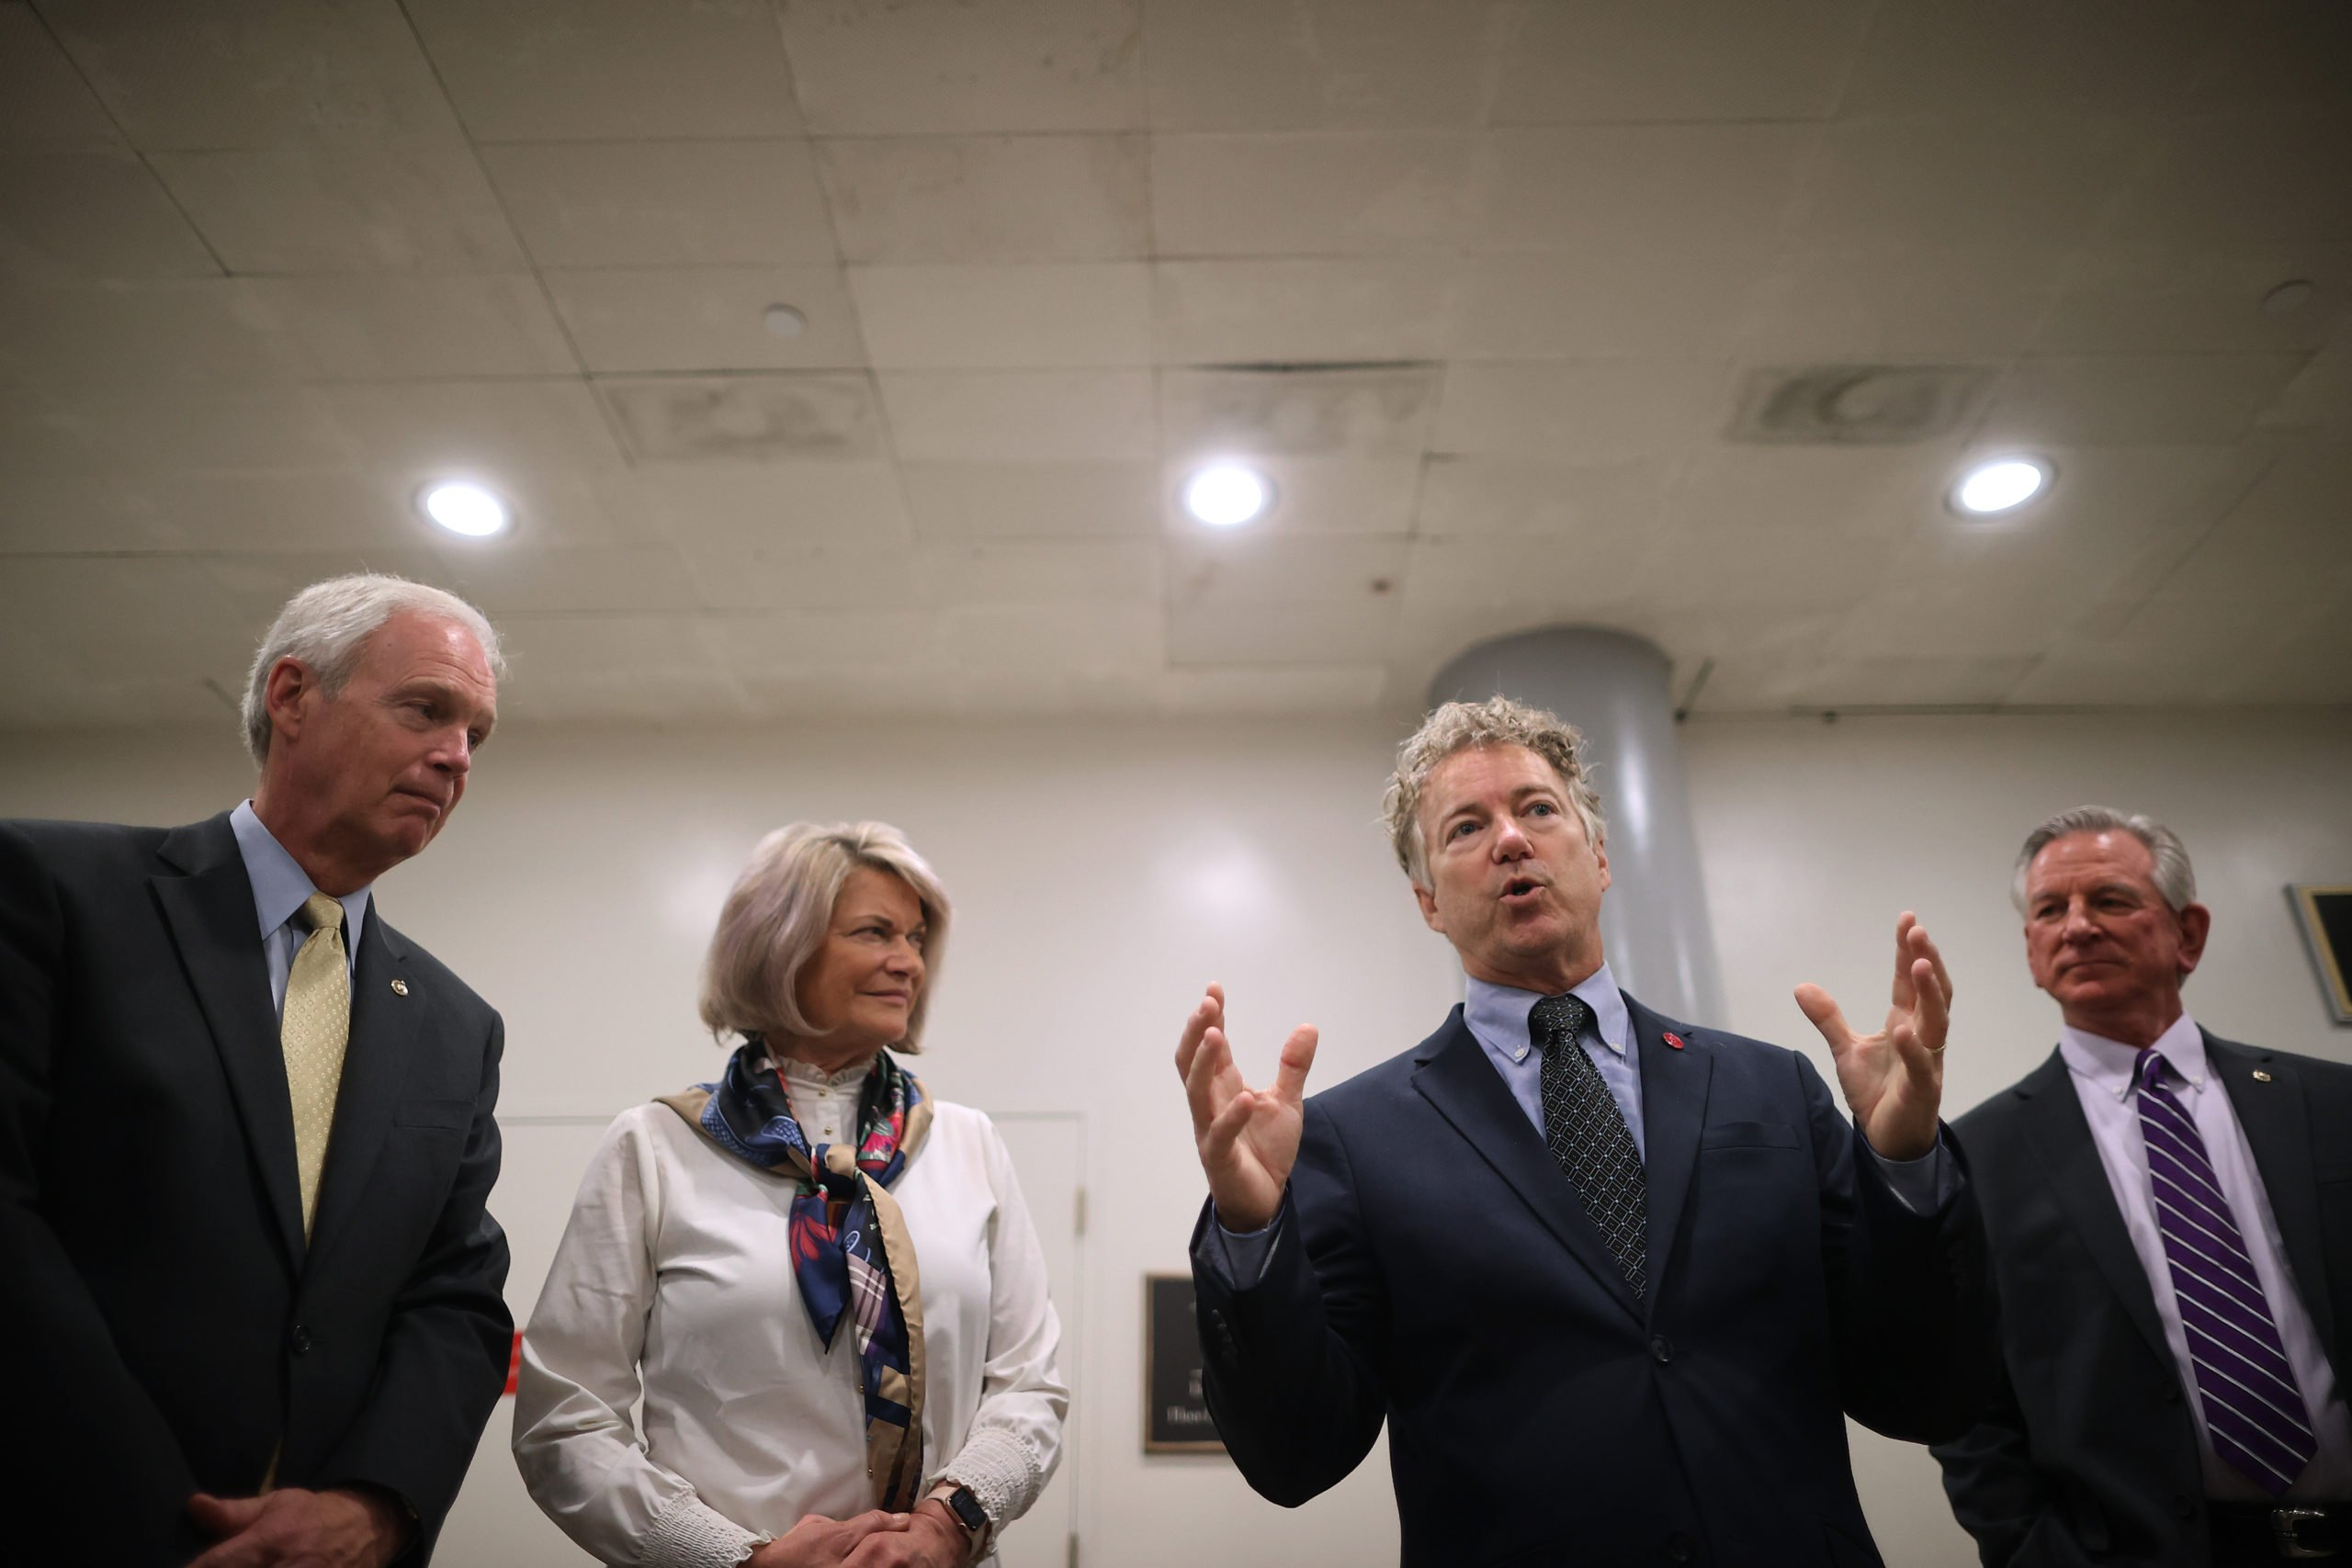 Republican Senators Ron Johnson, Cynthia Lummis, Rand Paul Tommy Tuberville speak about their objections to the Chinese trade bill on May 28. (Chip Somodevilla/Getty Images)